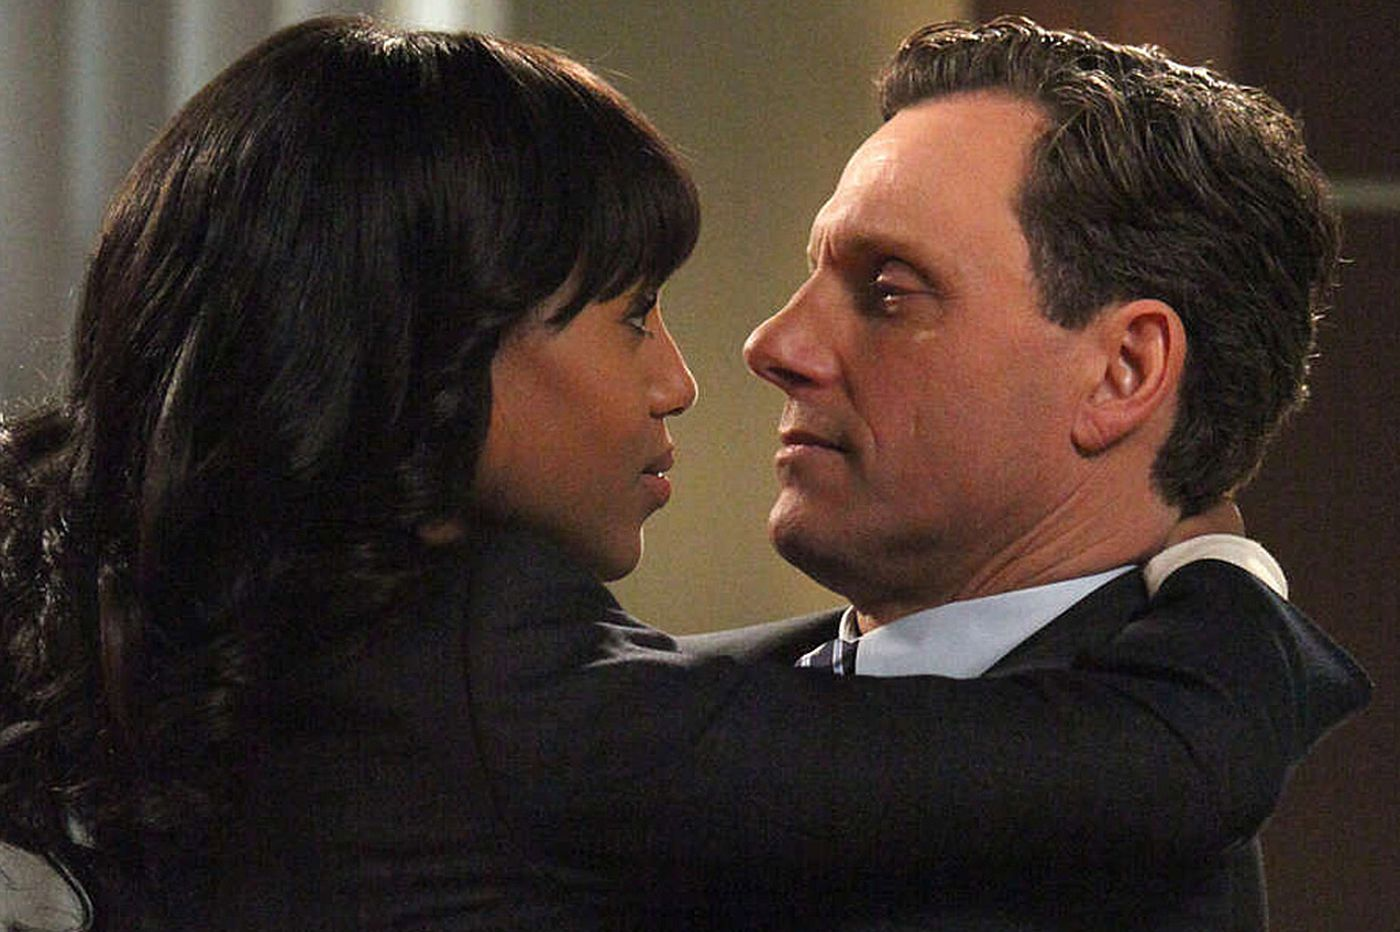 Sideshow: 'Scandal' star was a 'goofy' kid